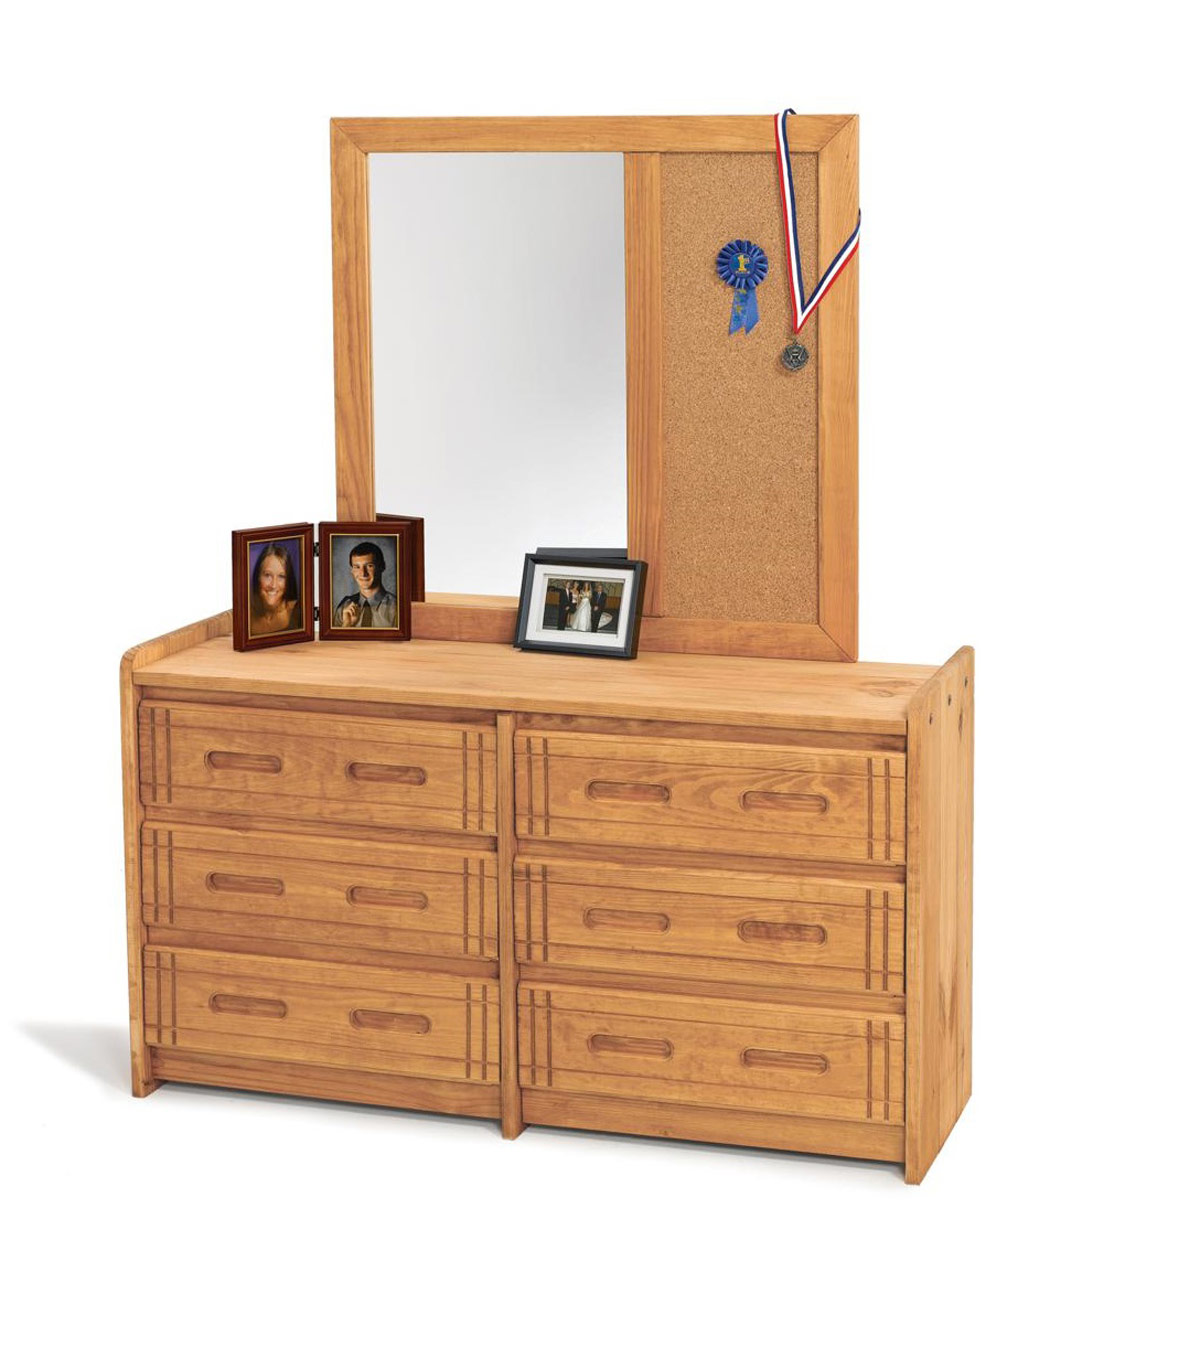 Chelsea Home 360066-012-W 6 Drawer Dresser with Mirror - Honey